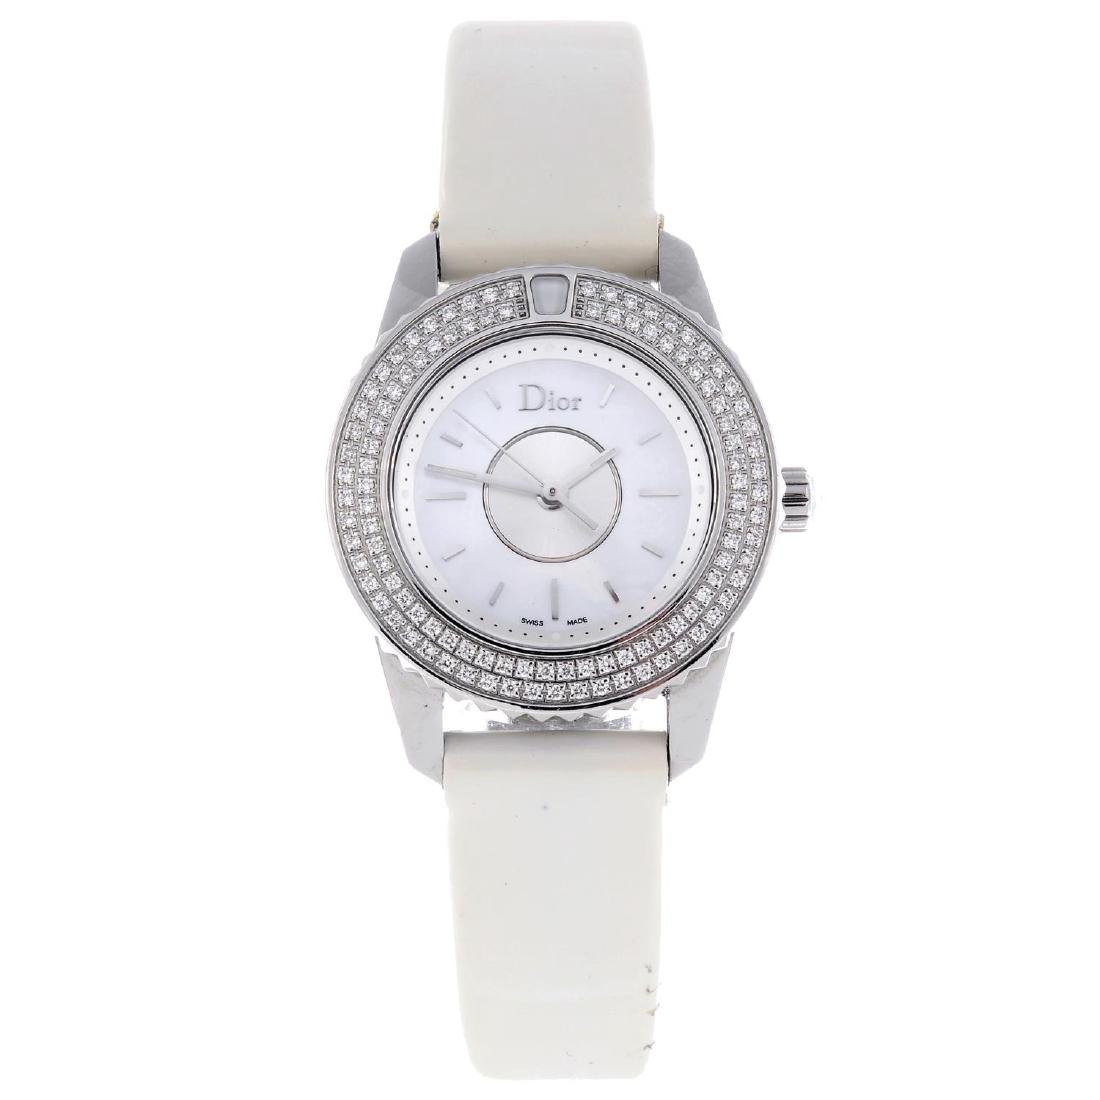 DIOR - a lady's Christal wrist watch. Stainless steel